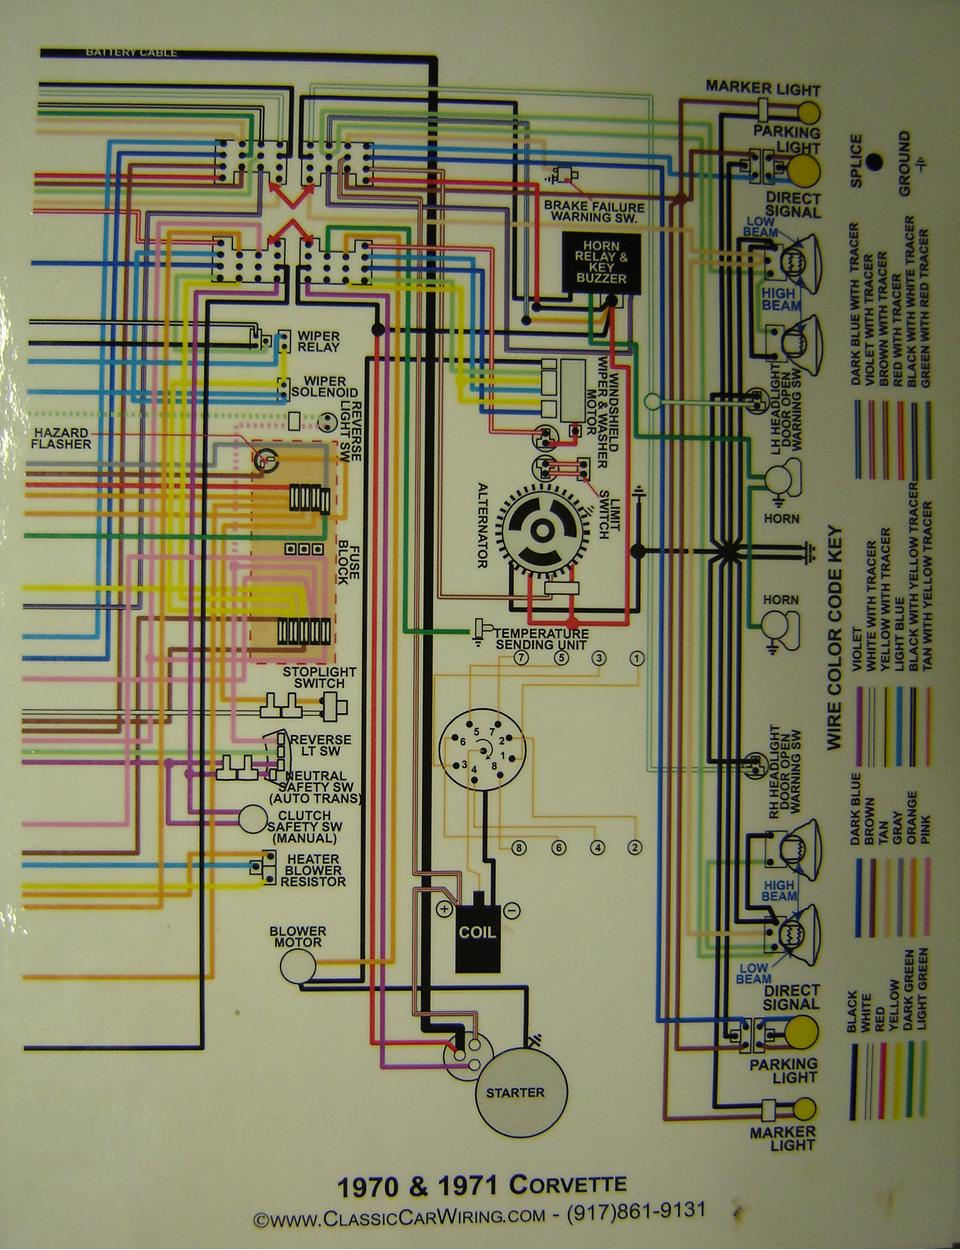 1970 71 corvette color wiring diagram B chevy diagrams 1989 corvette engine wiring harness at gsmportal.co